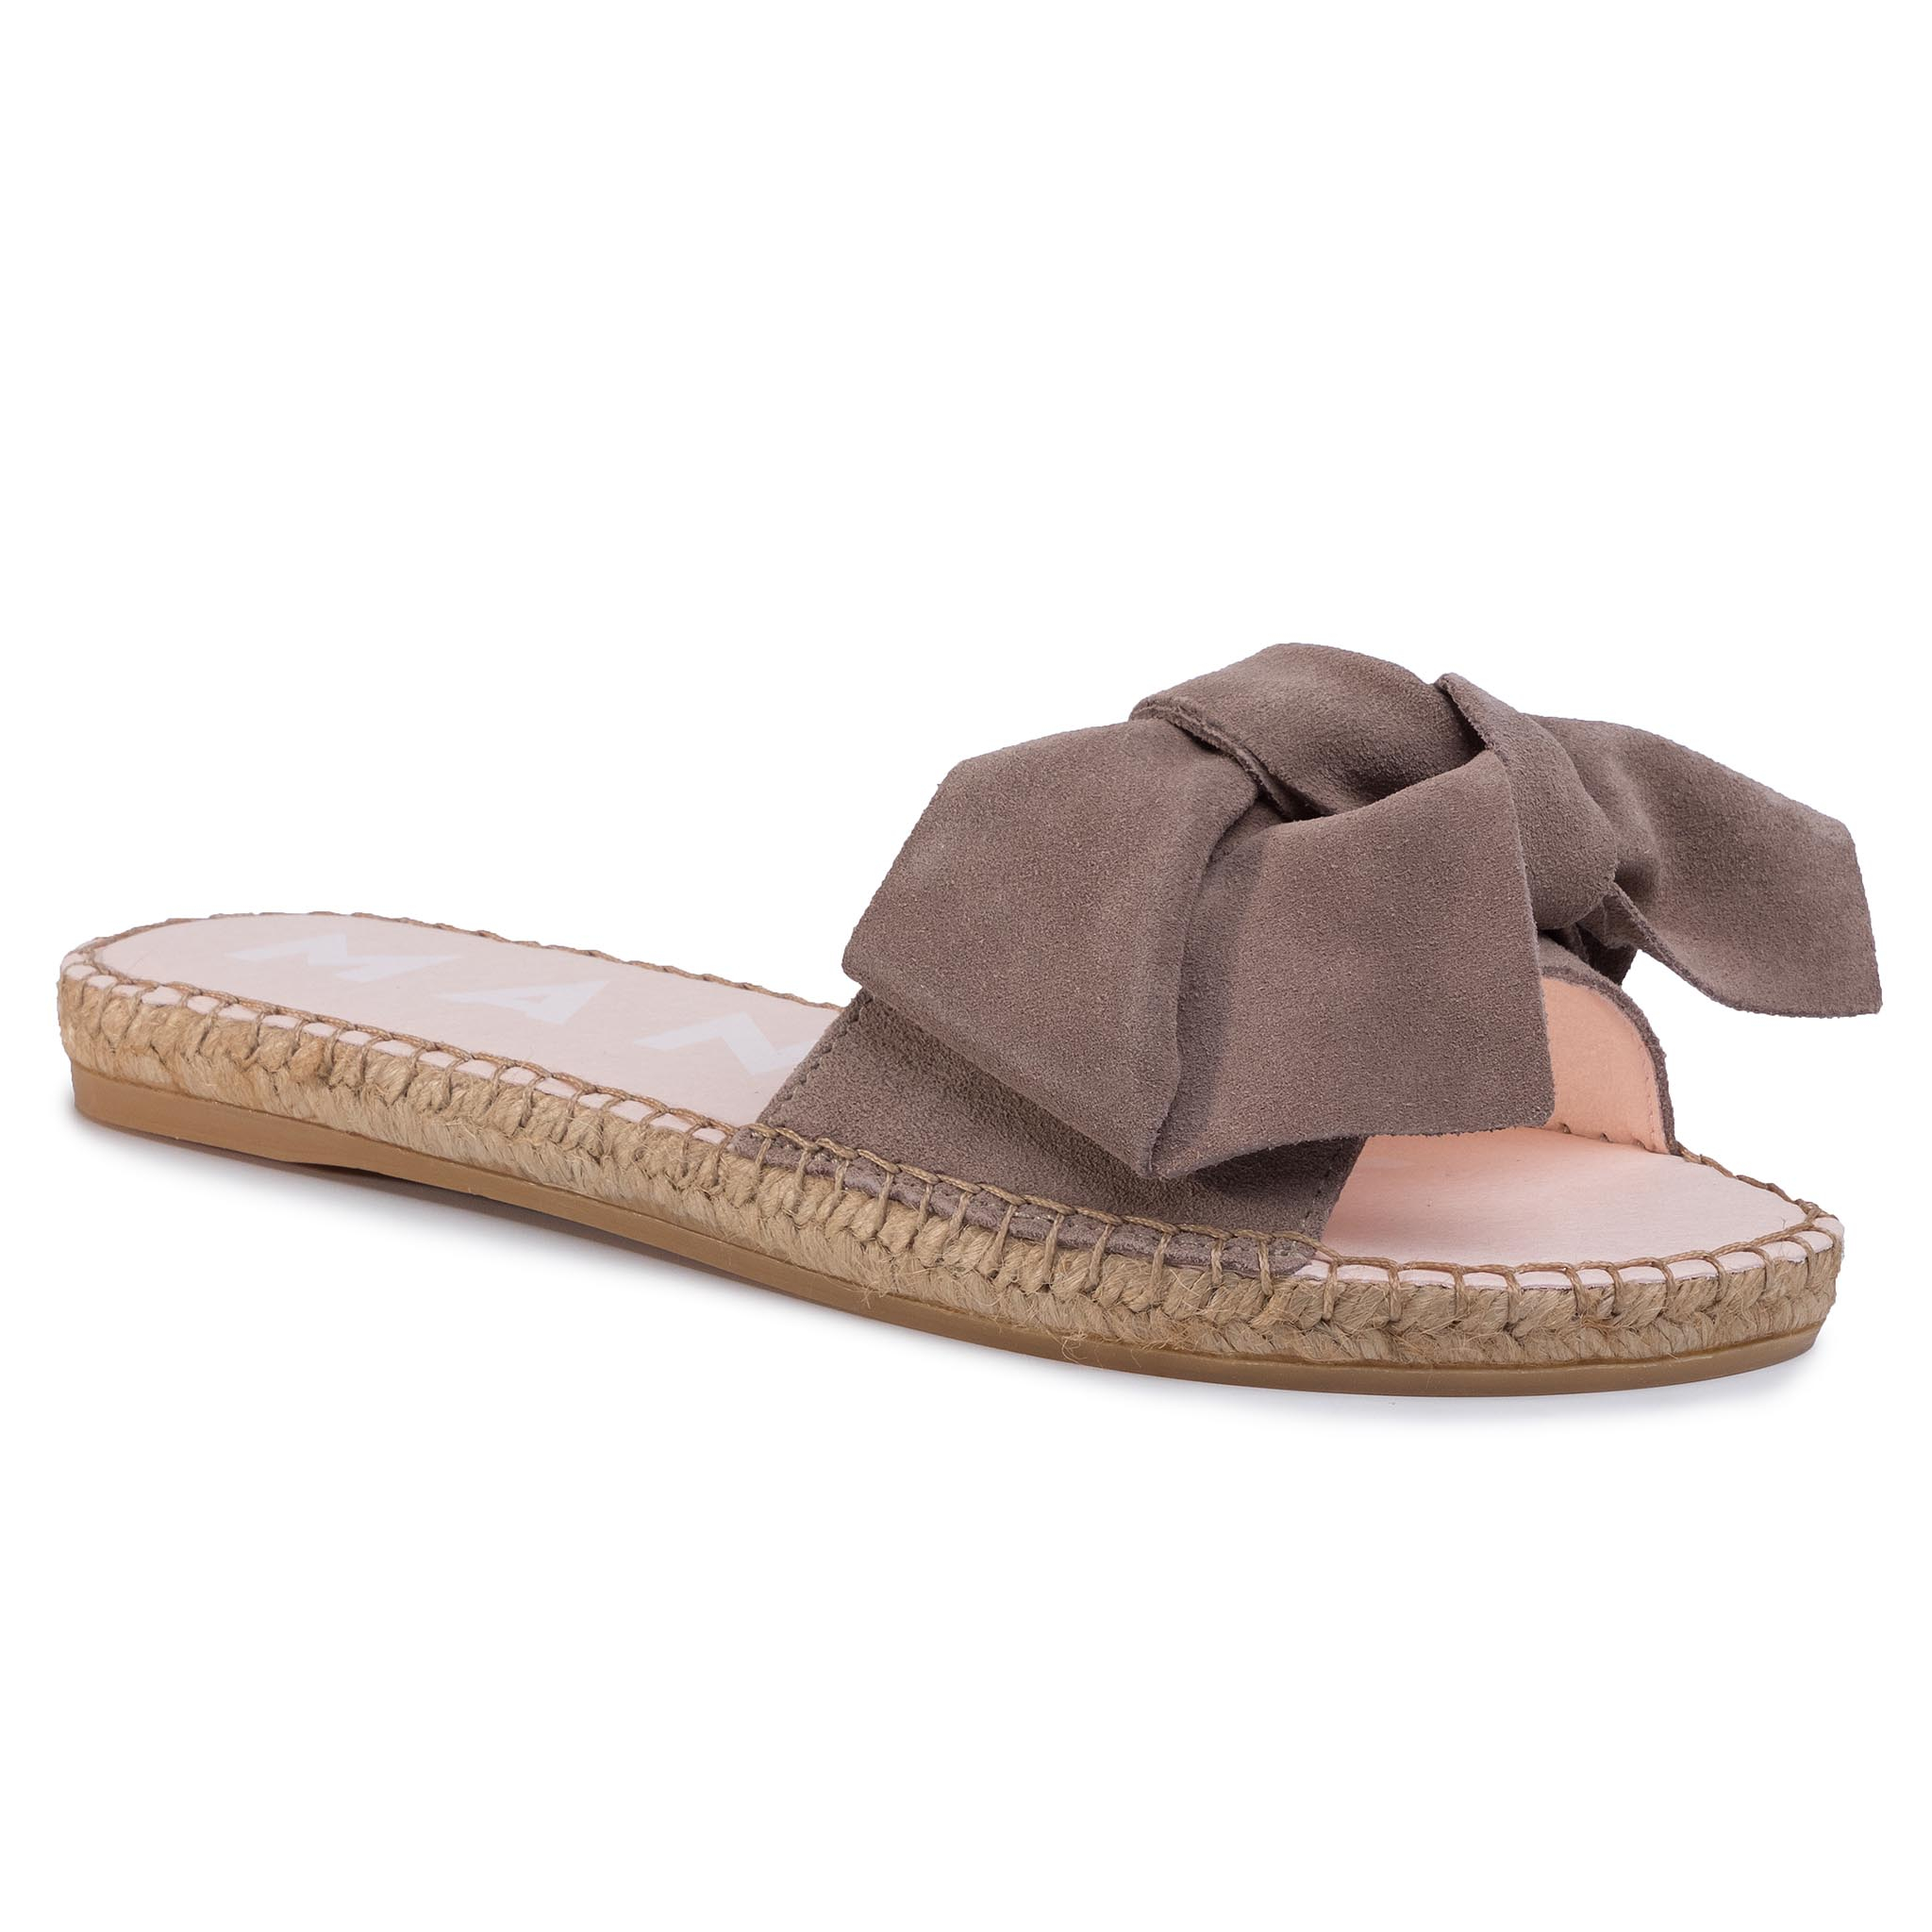 Espadrilles MANEBI - Sandals With Bow W 1.9 J0 Taupe